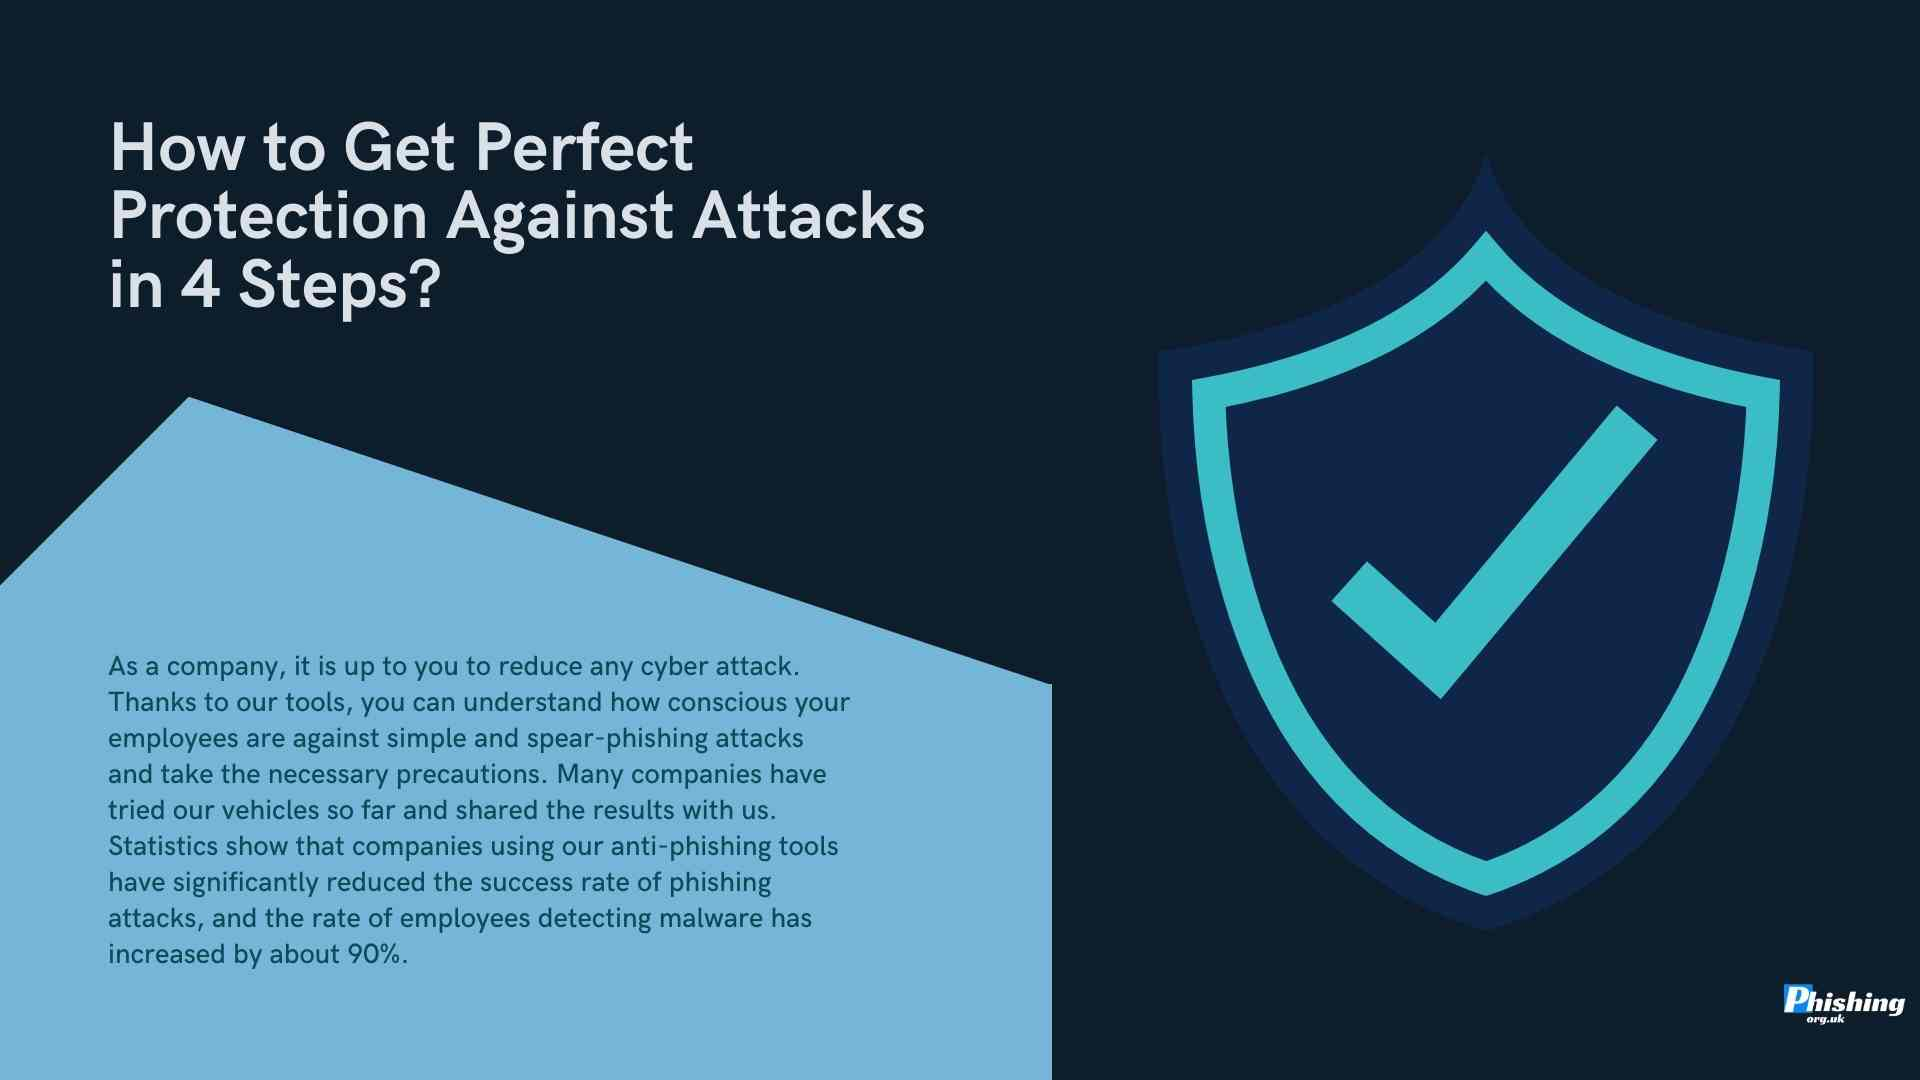 Perfect Protection Against Attacks in 4 Steps